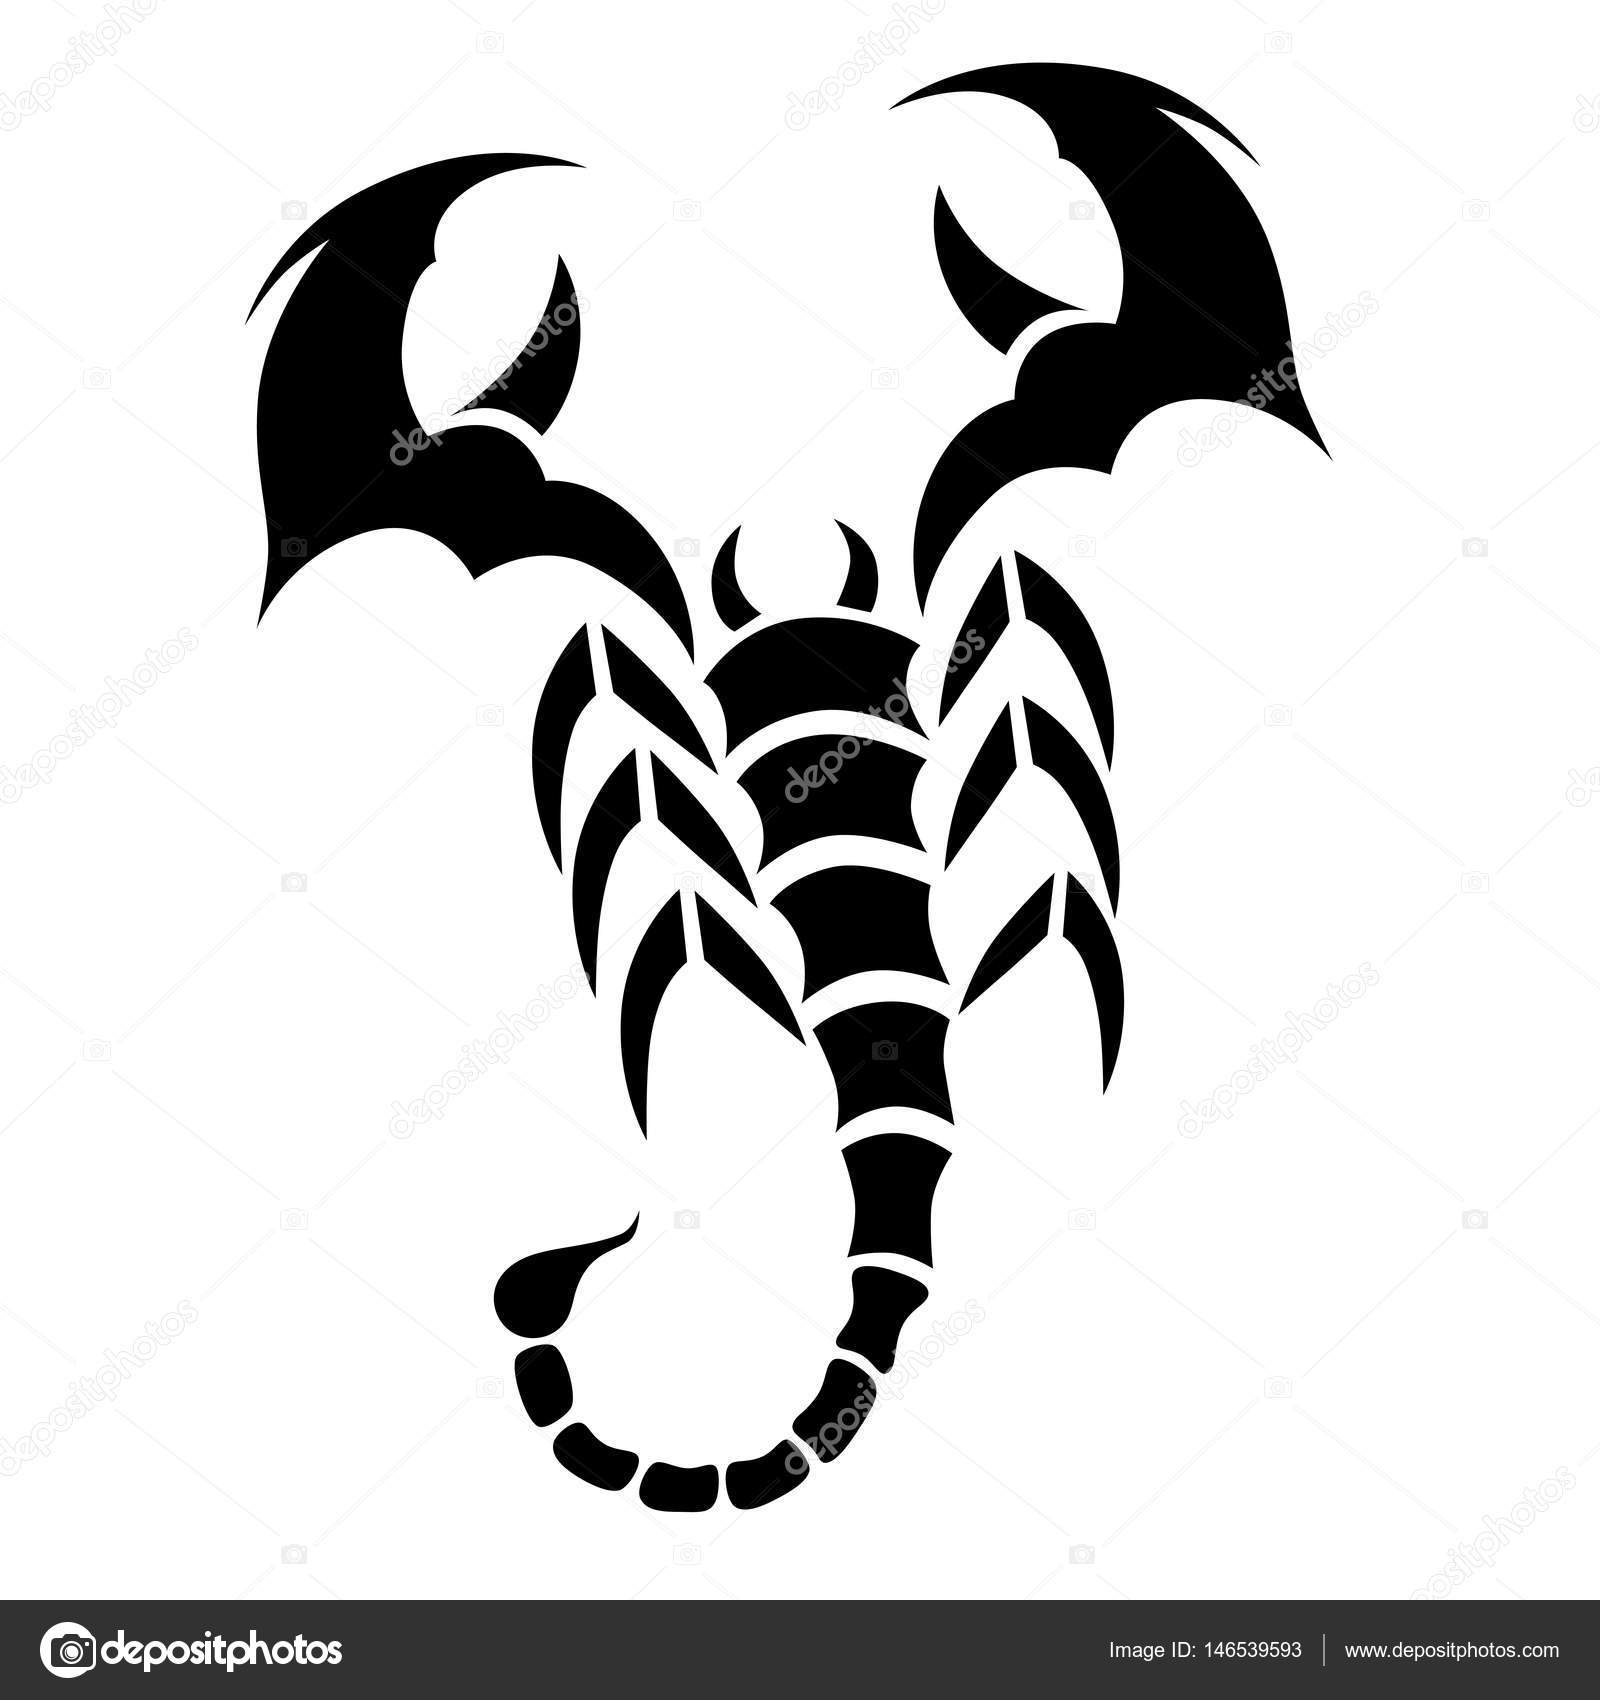 Tattoo Tribal Scorpion Stock Vector C 1rudvi 146539593